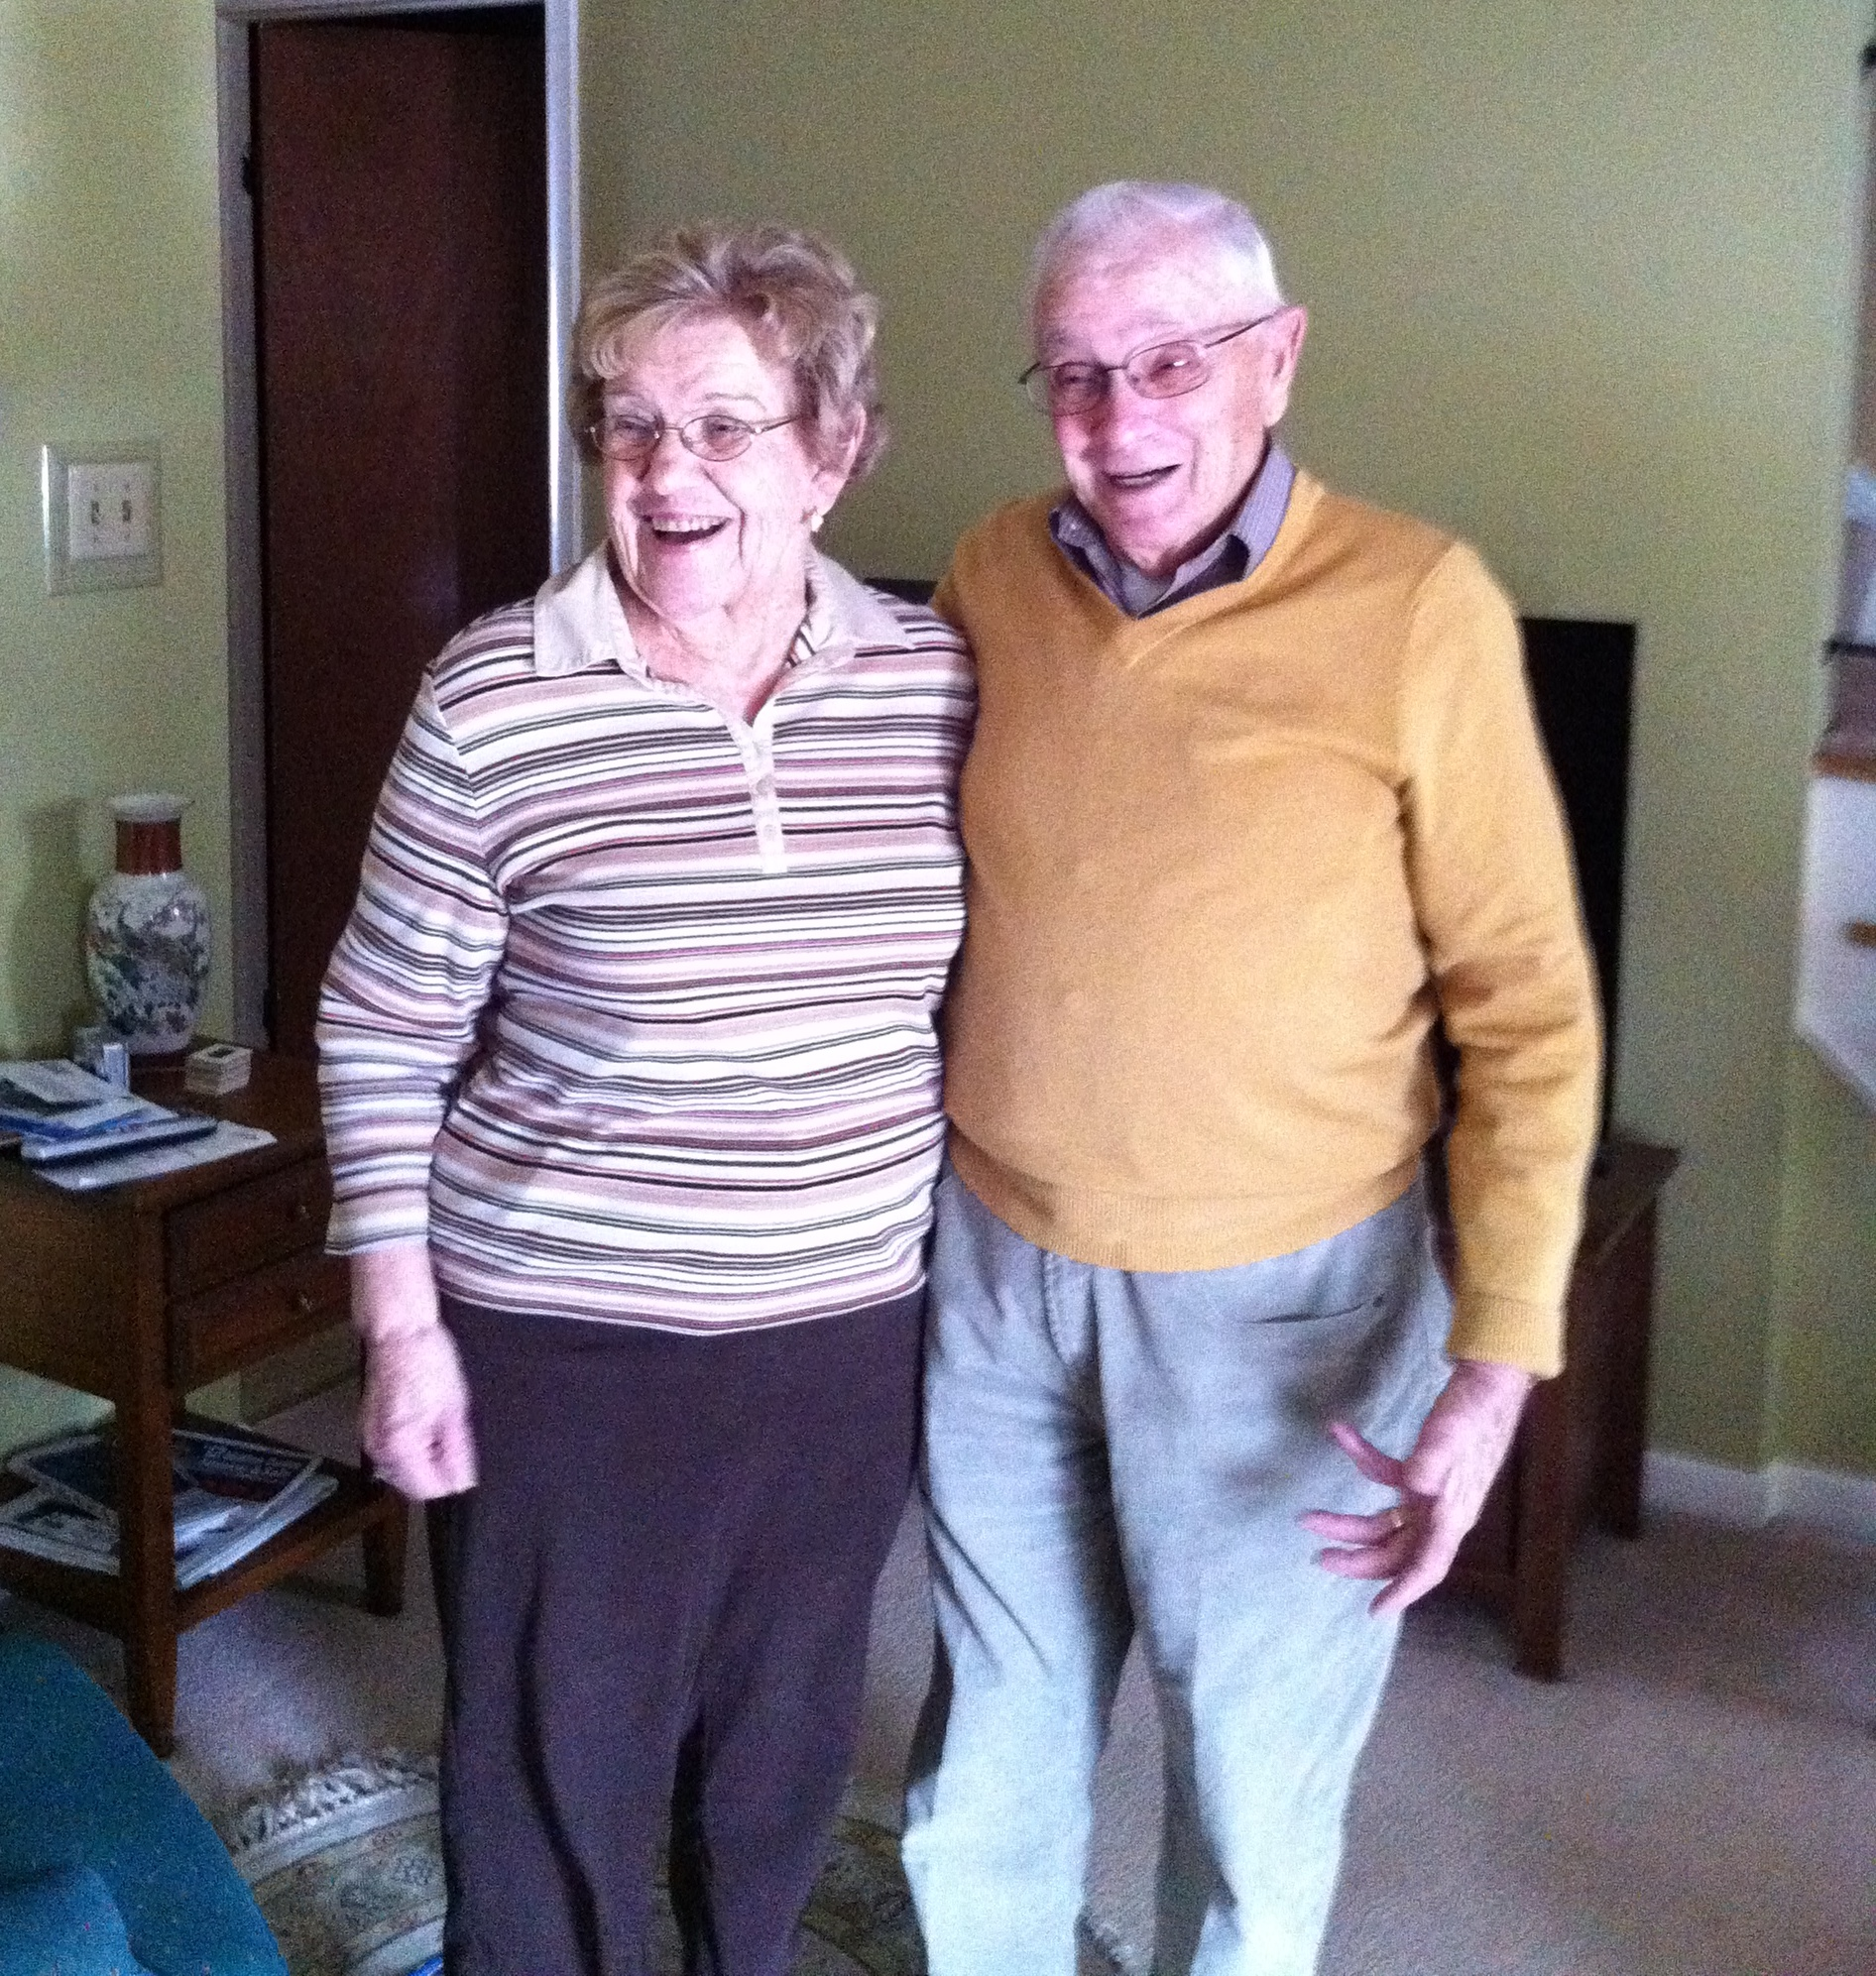 Here's a photo of Jane and Allen taken in 2011